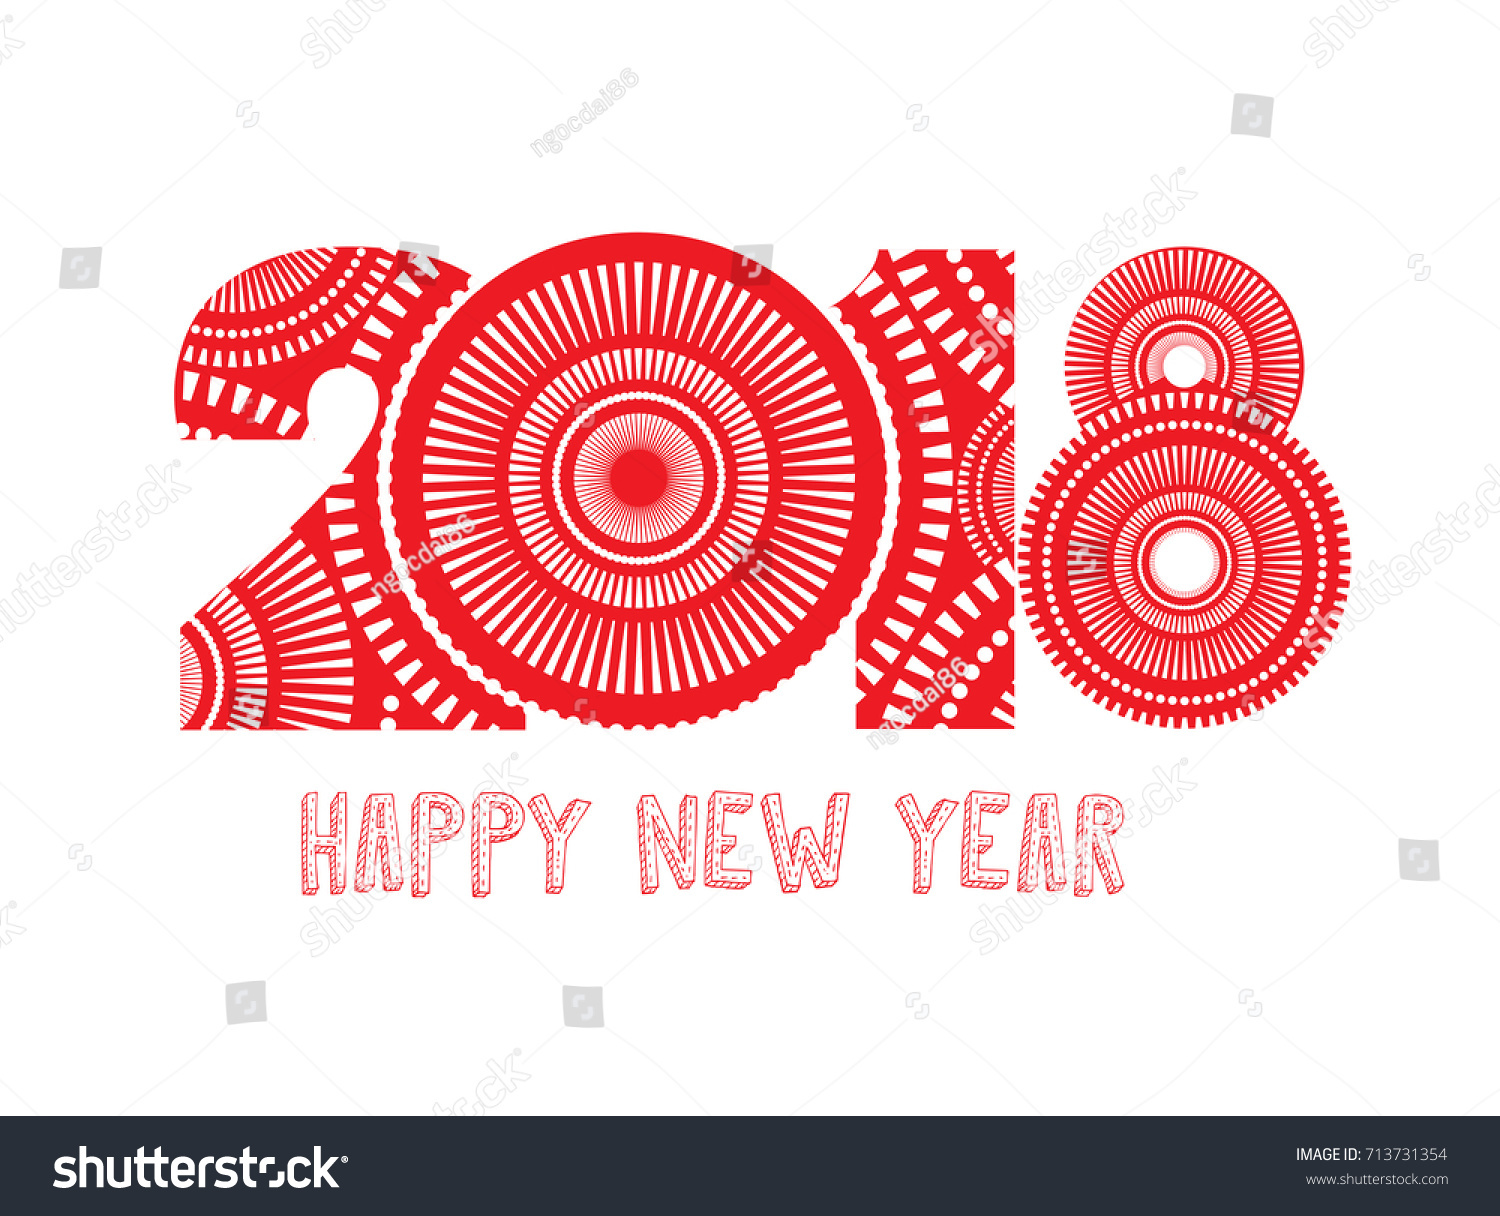 vector illustration of fireworks happy new year 2018 theme